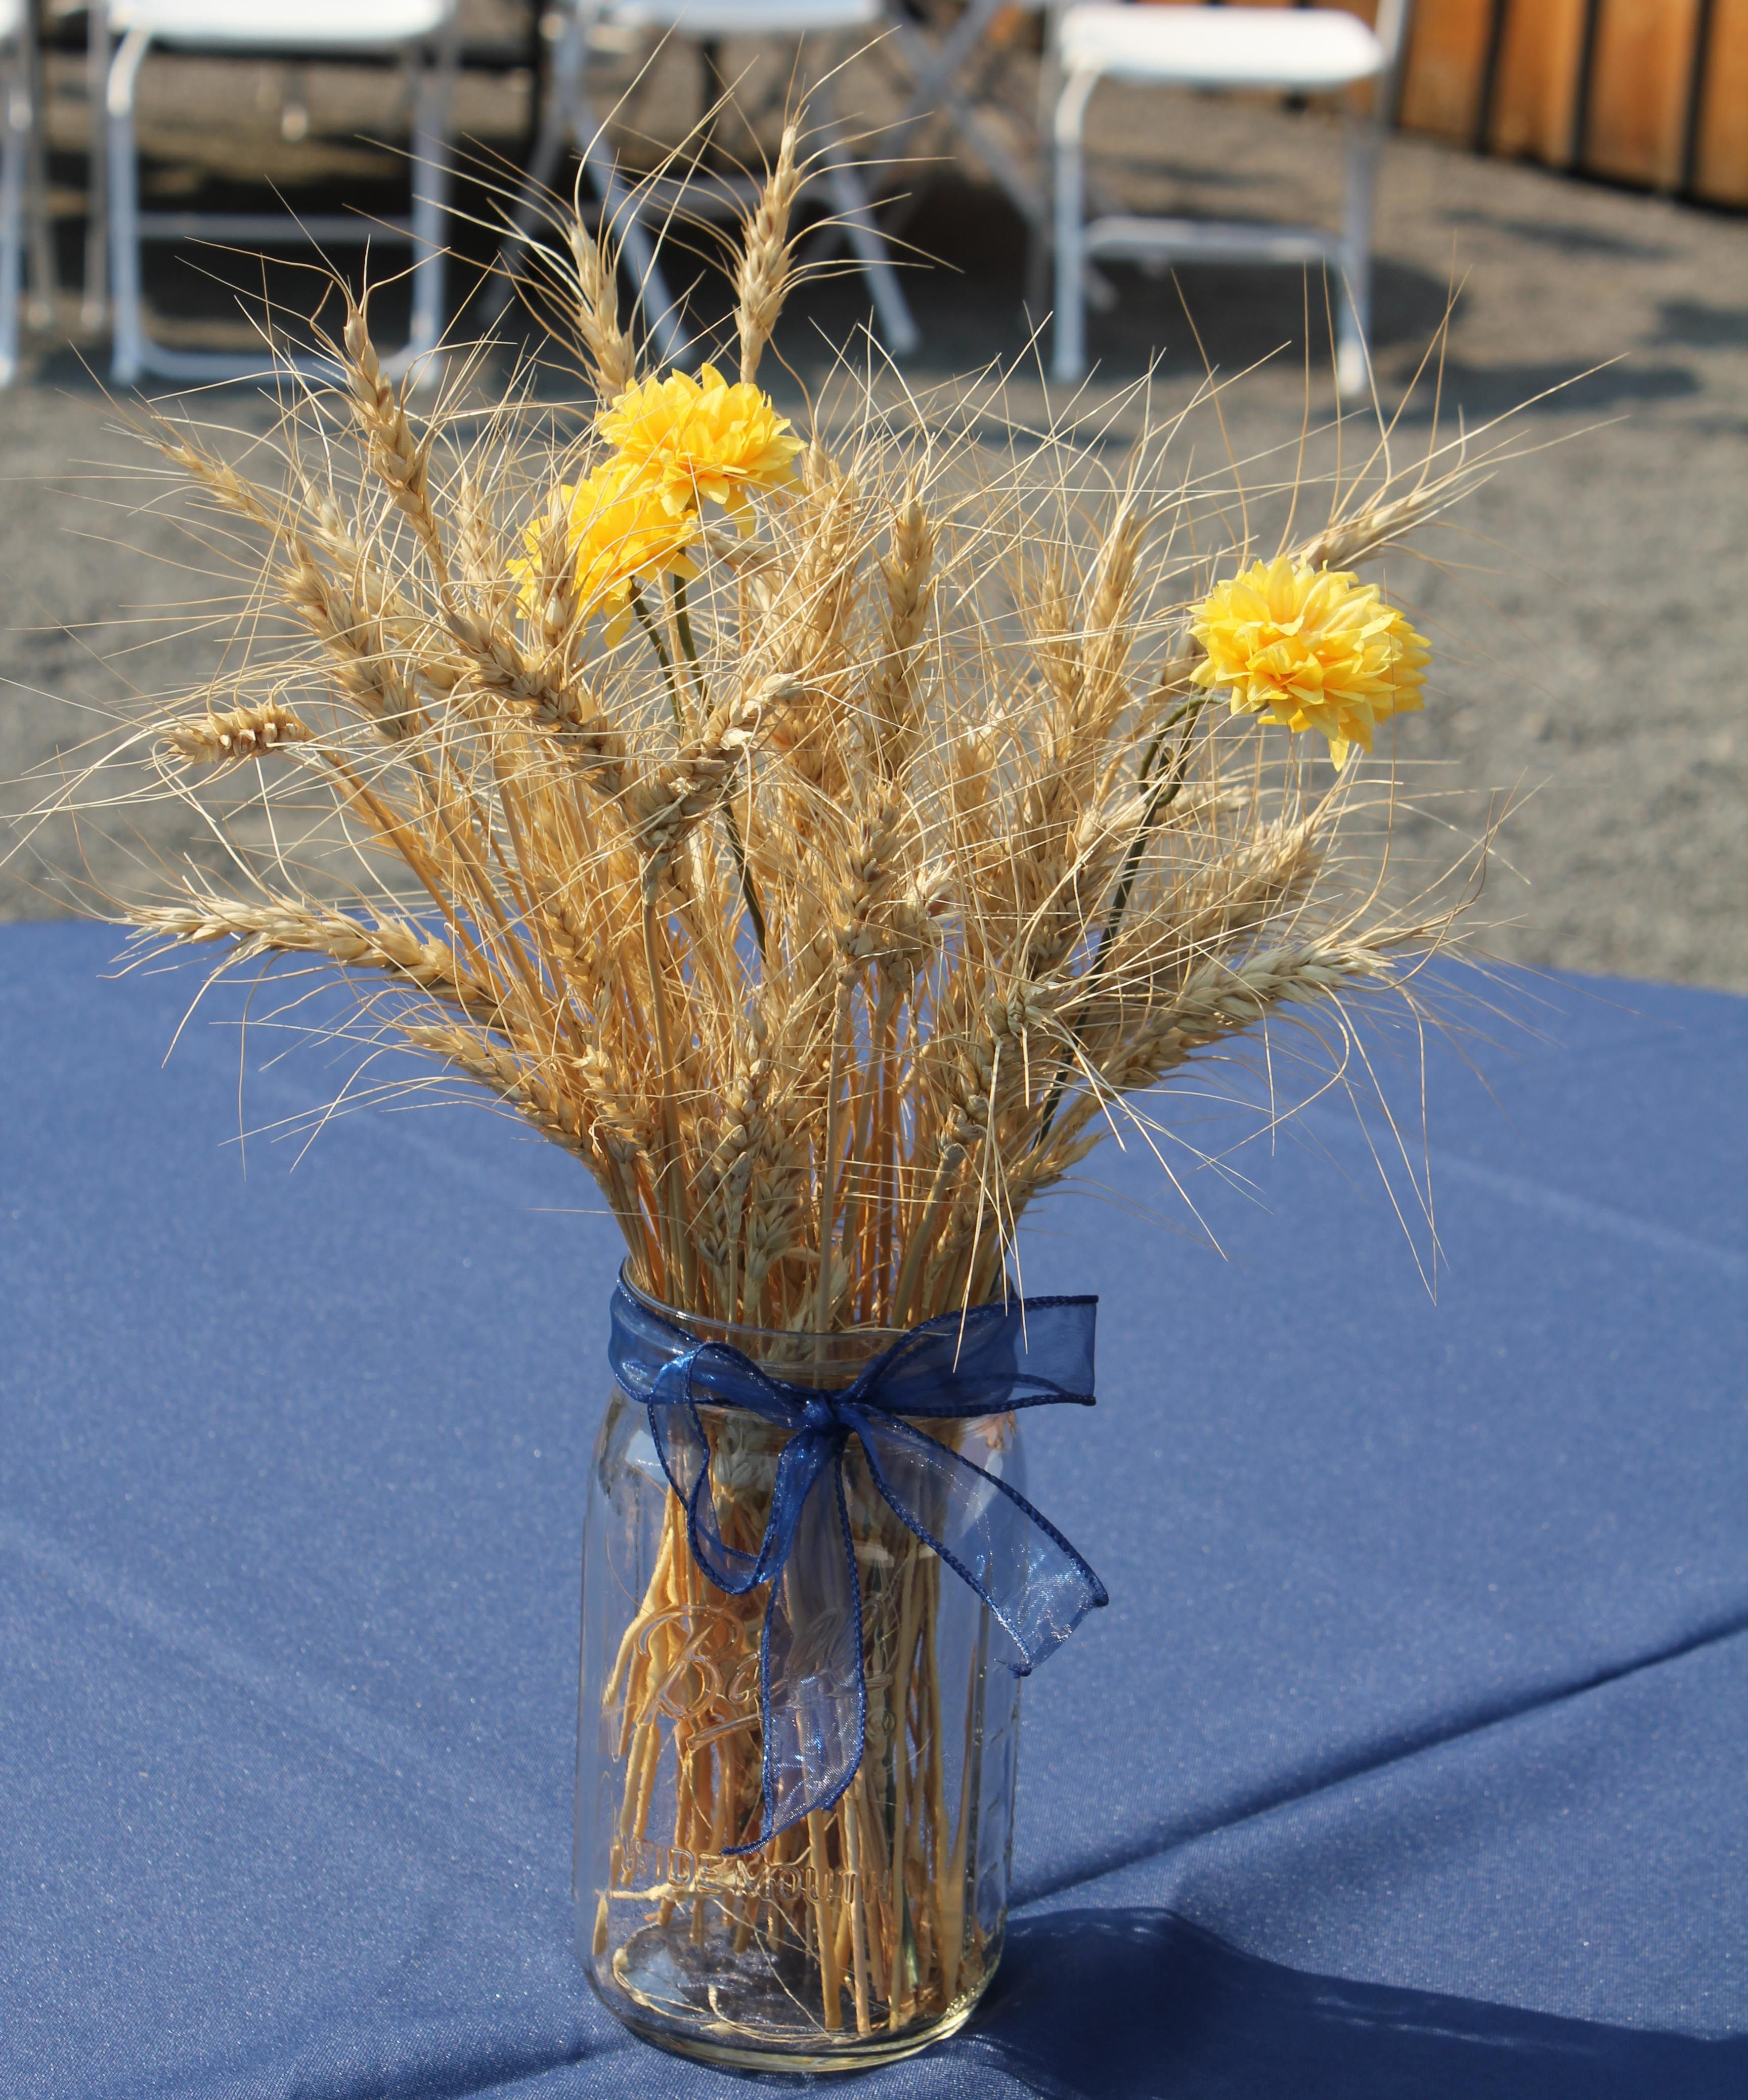 Western Table Centerpieces | Table centerpieces – simple ... - photo#25